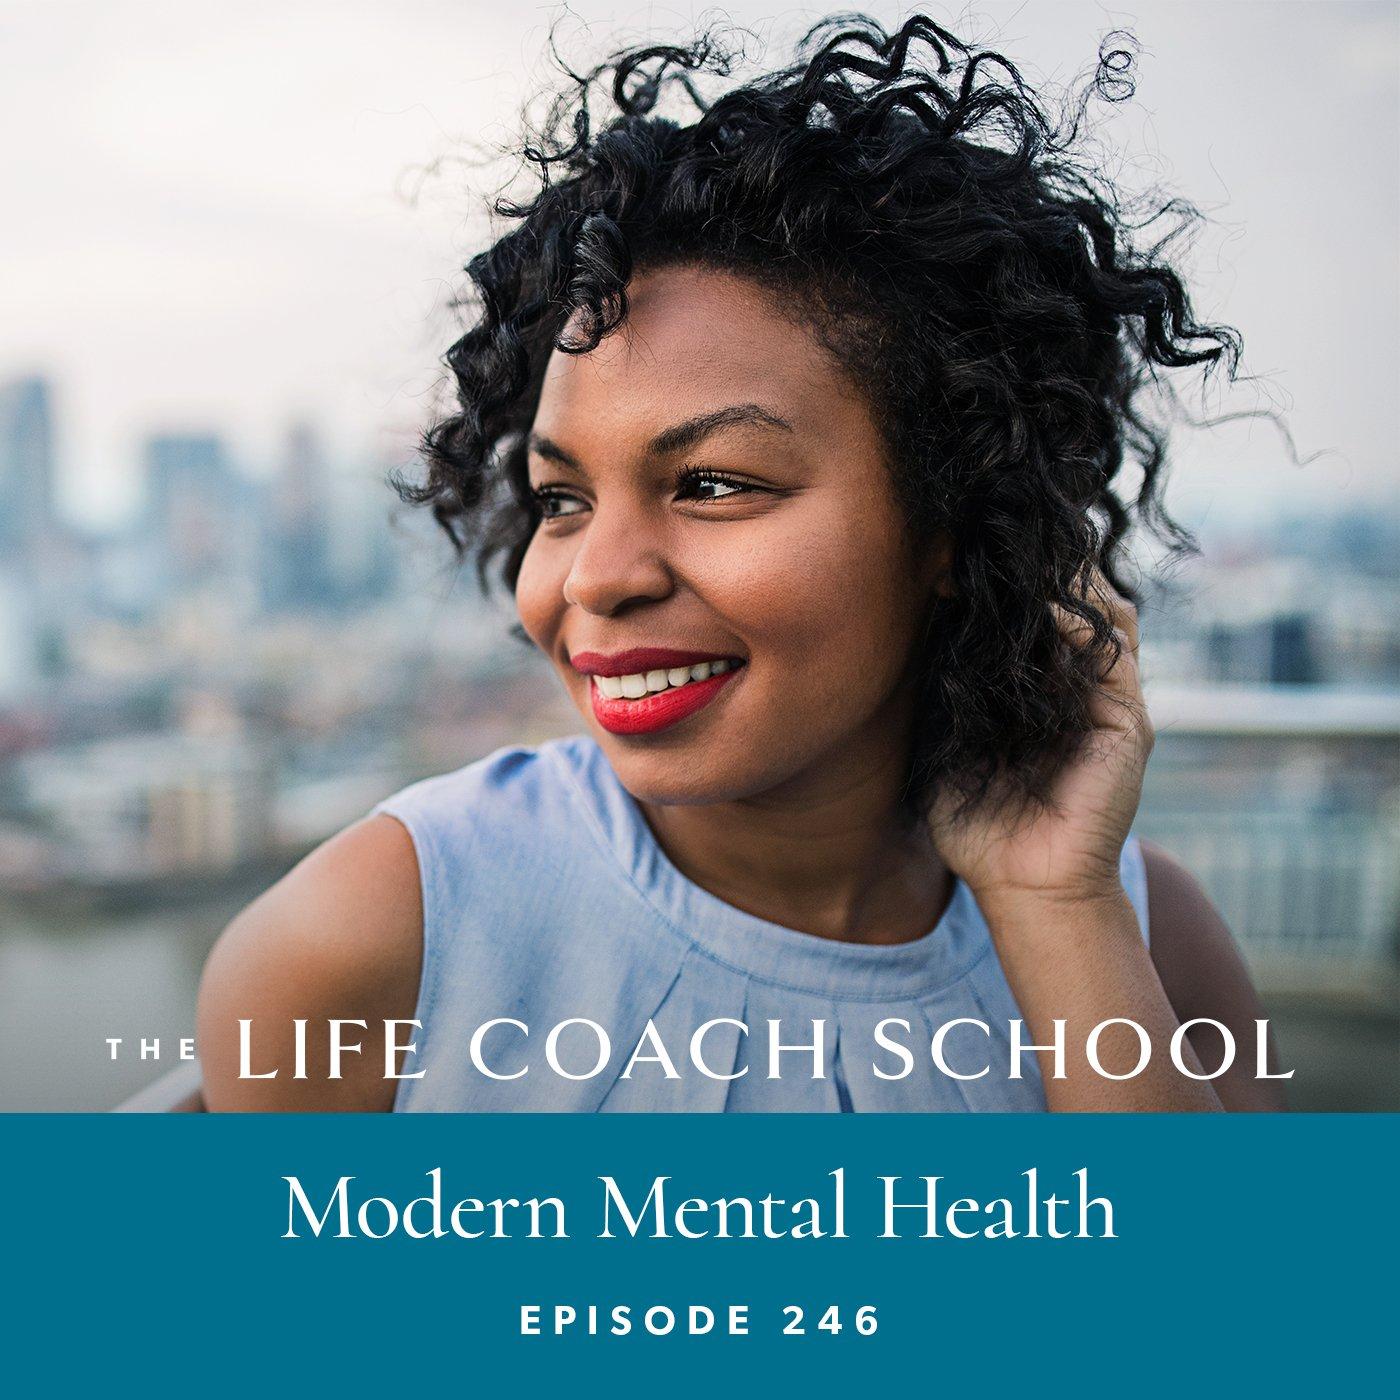 The Life Coach School Podcast with Brooke Castillo | Episode 246 | Modern Mental Health